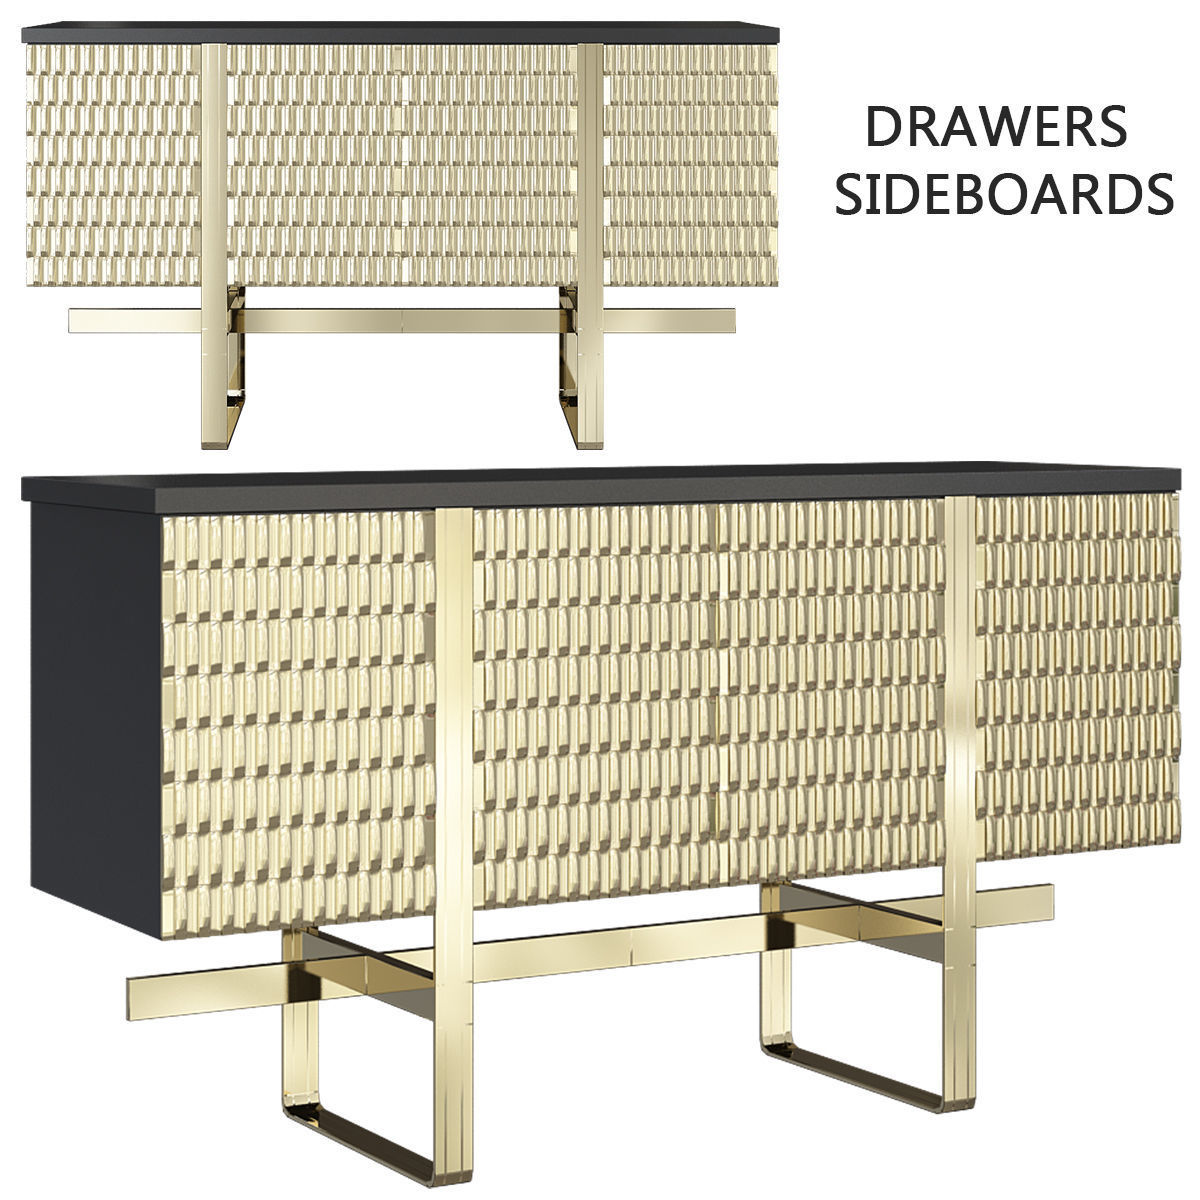 Drawers - Sideboards low poly 3d model